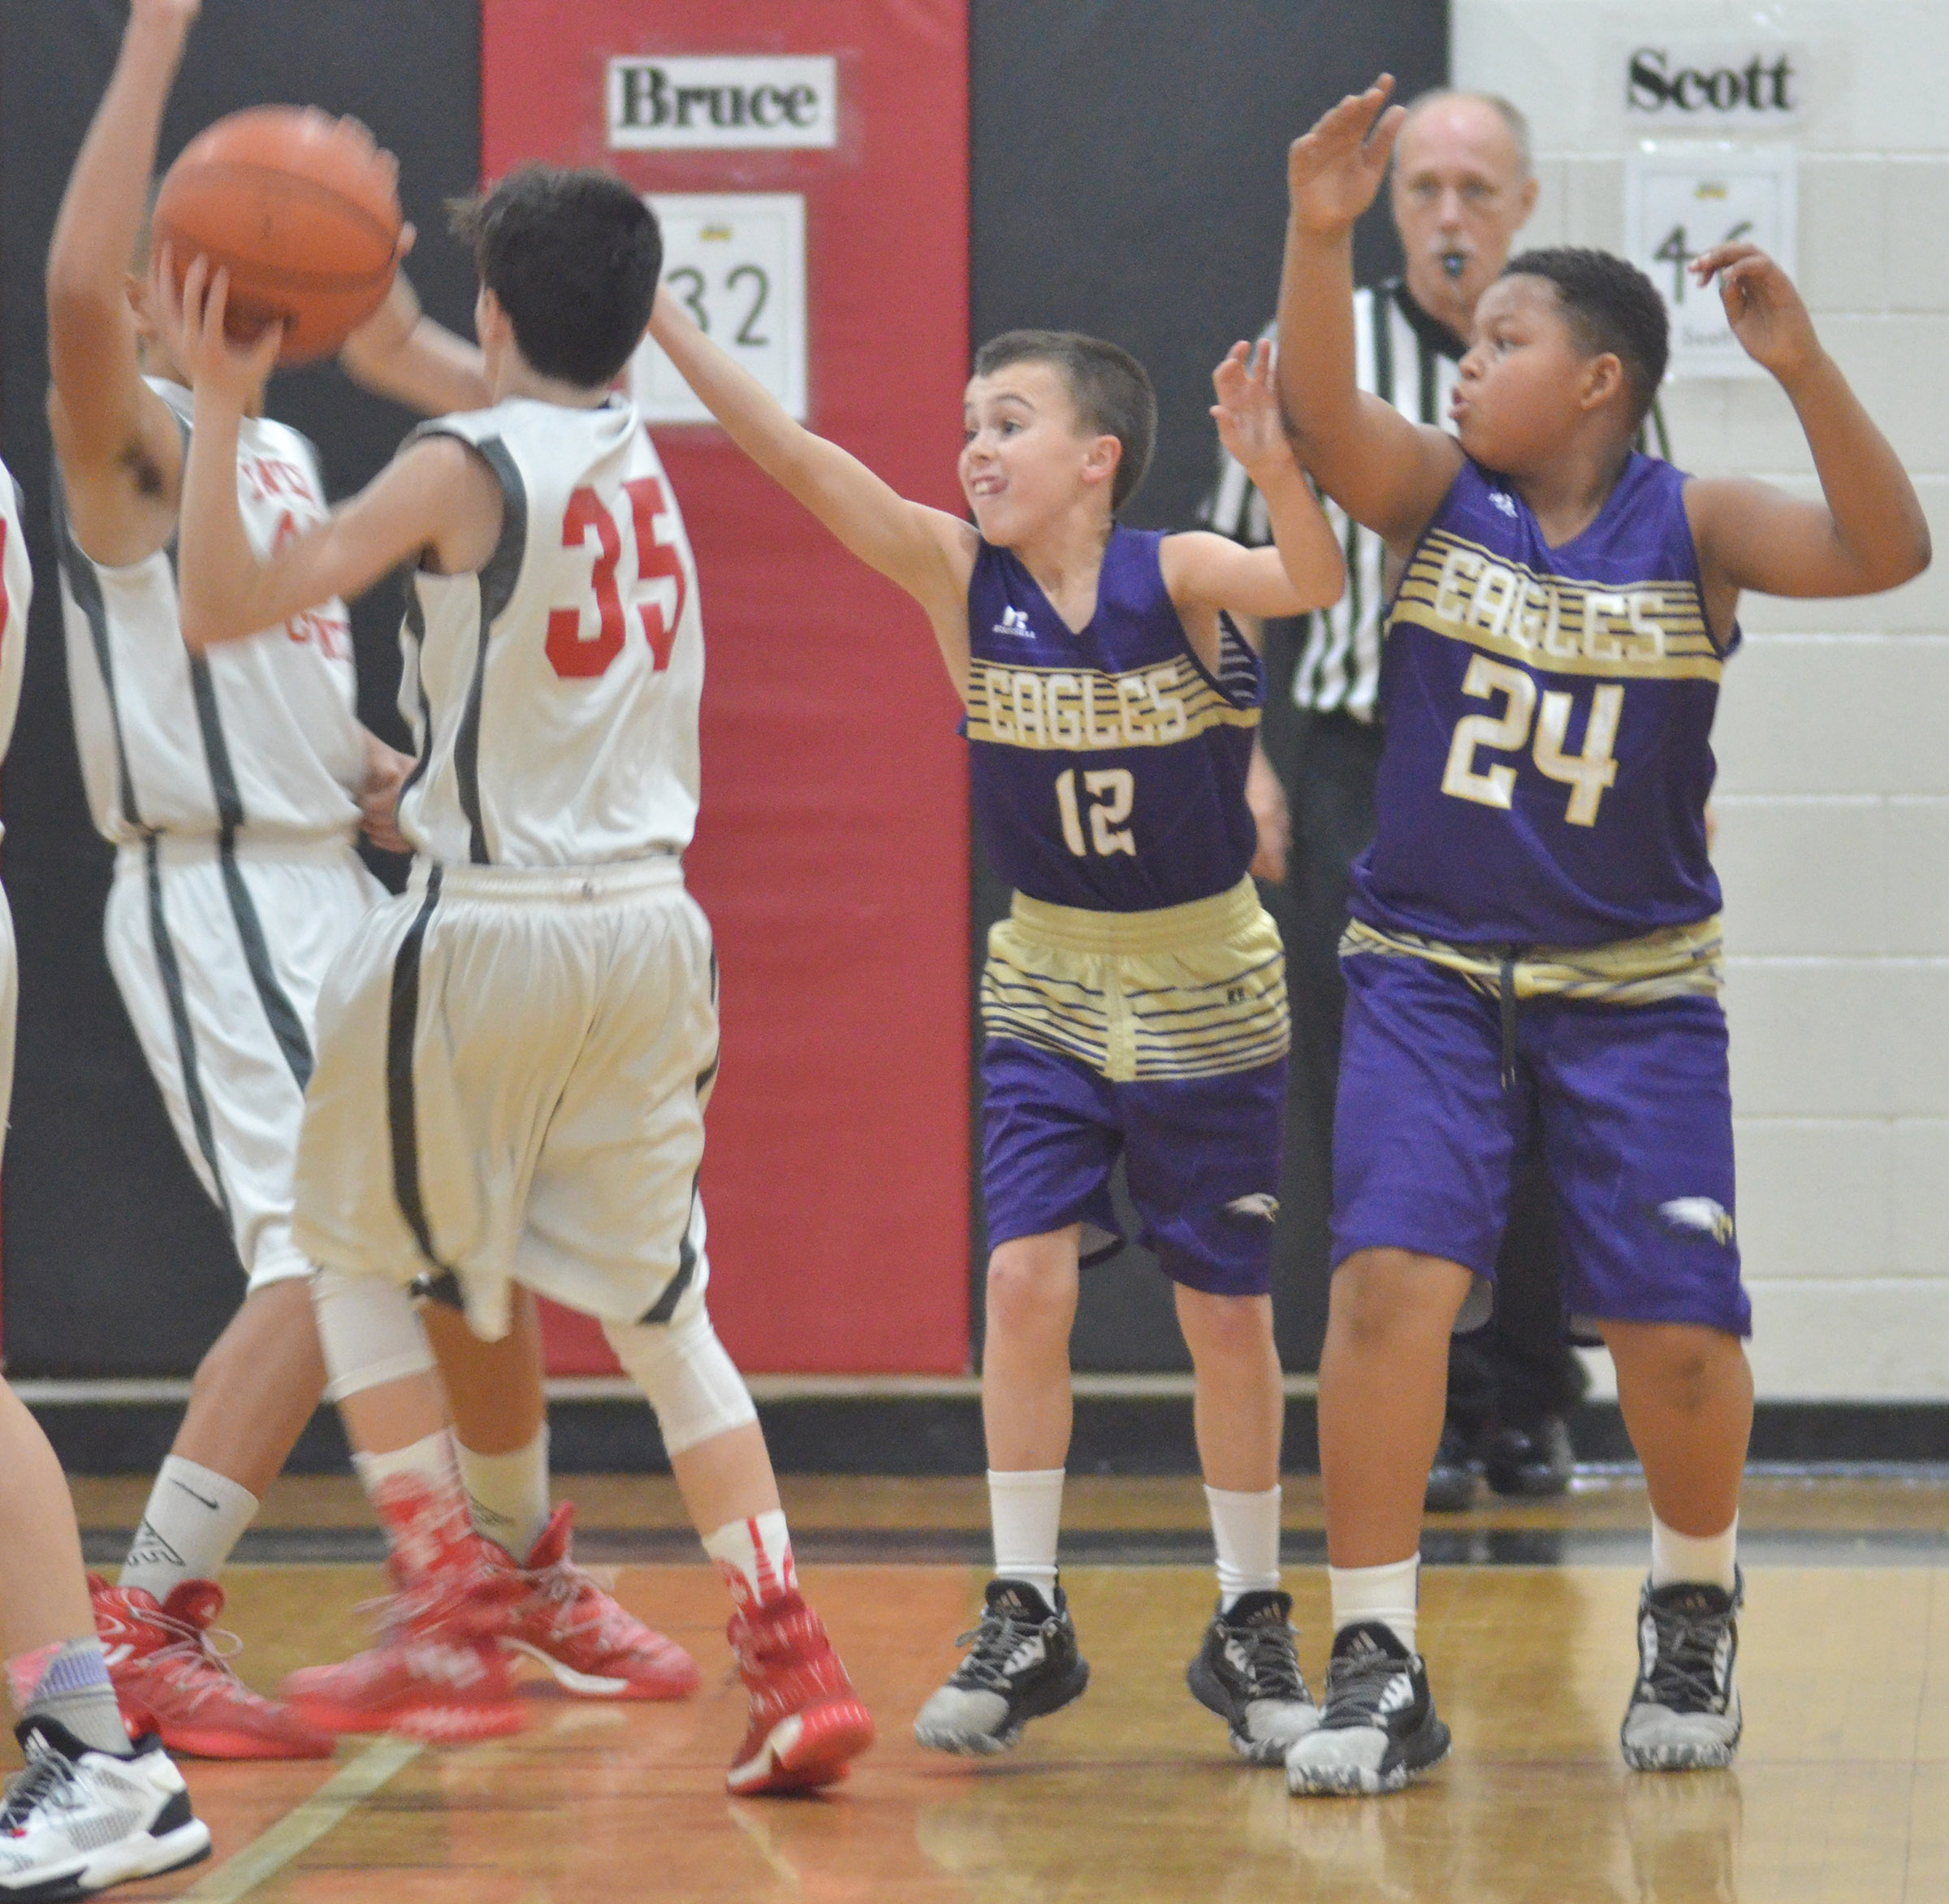 CMS sixth-graders Chase Hord, at left, and Keondre Weathers battle for the ball.